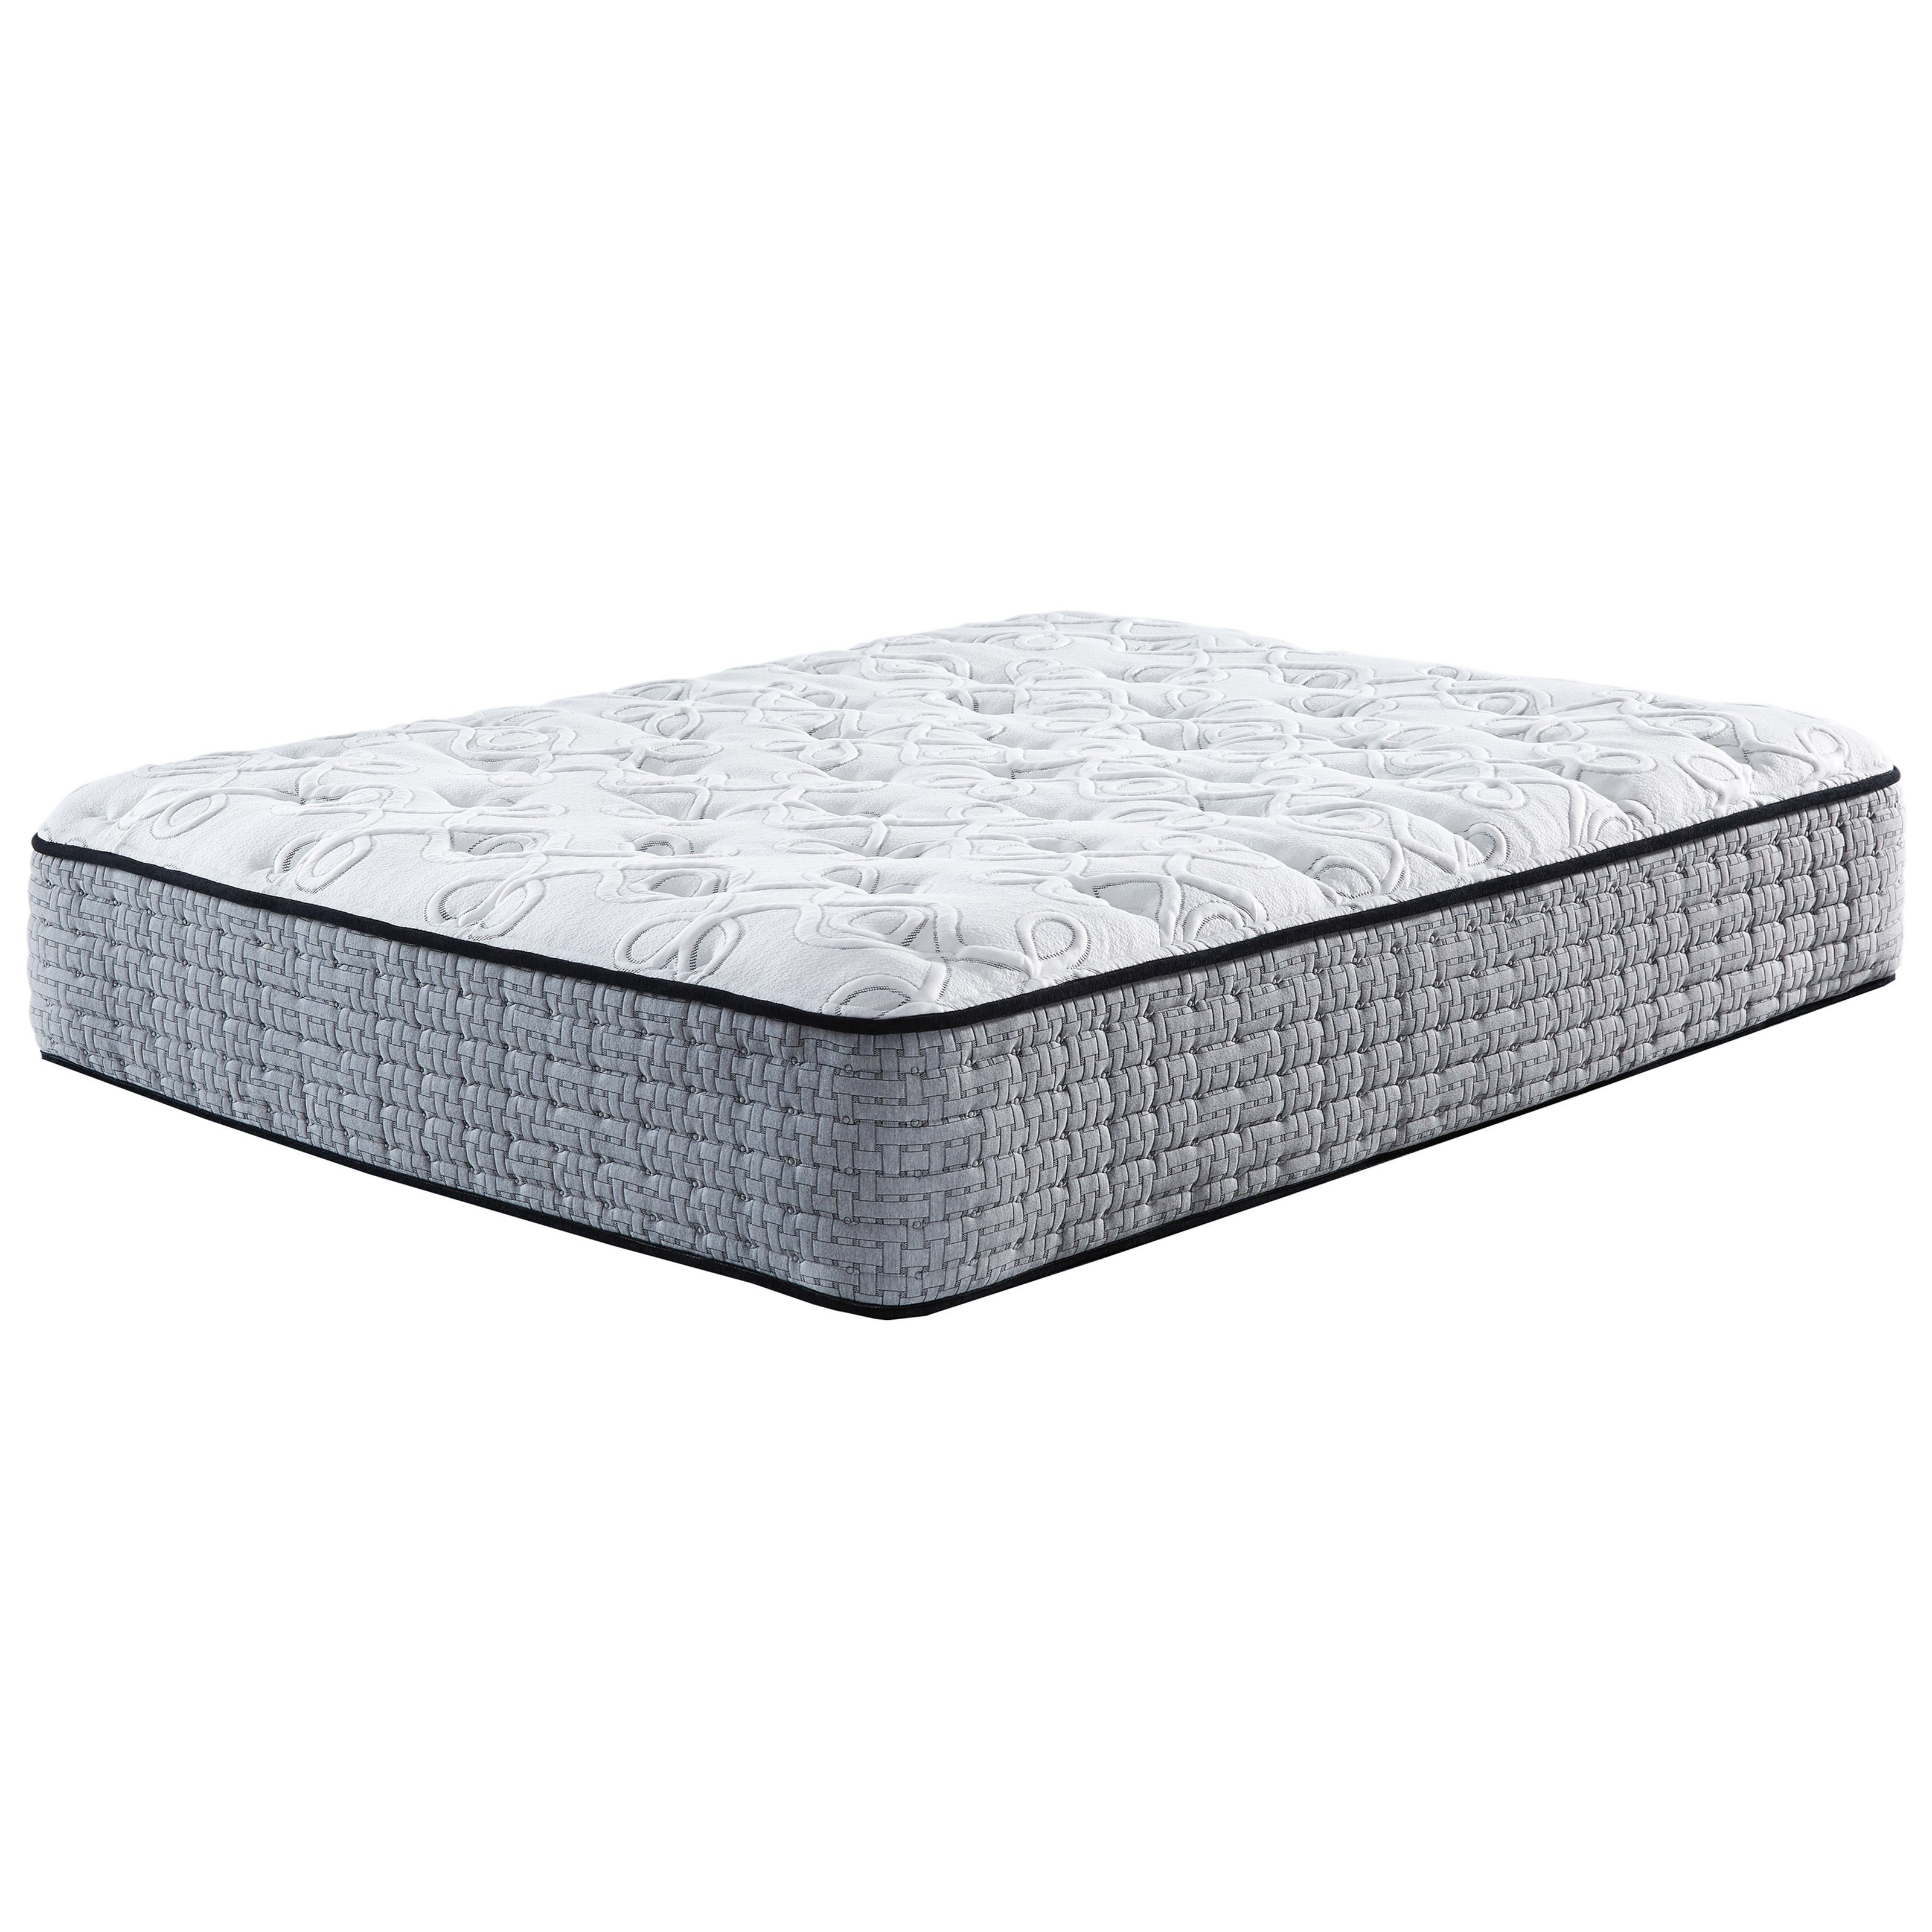 M631 Mt Rogers Plush King Pocketed Coil Mattress by Sierra Sleep at Simply Home by Lindy's